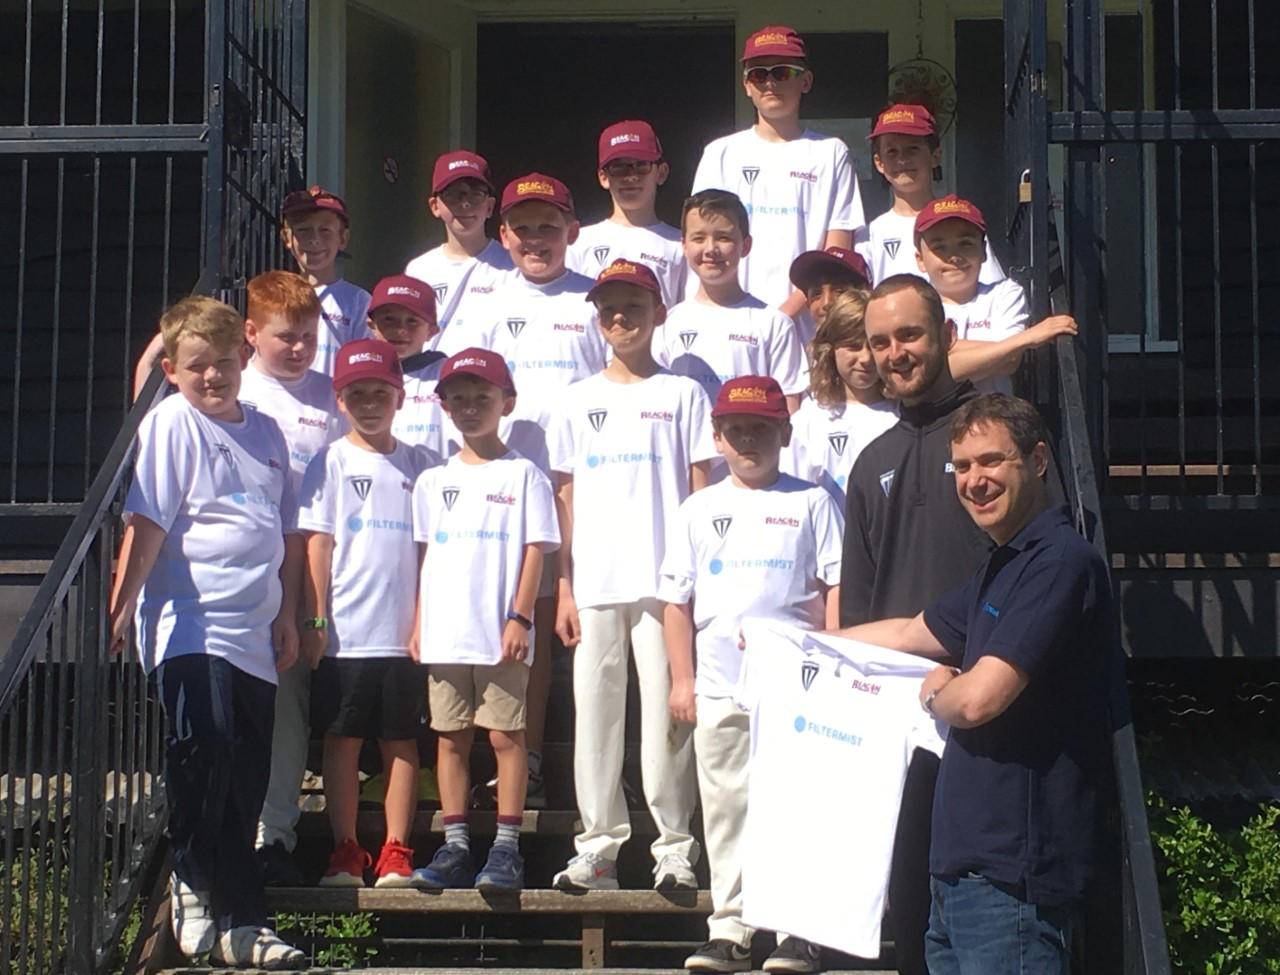 Under 11 Sparks squad is bowled over by support from Filtermist